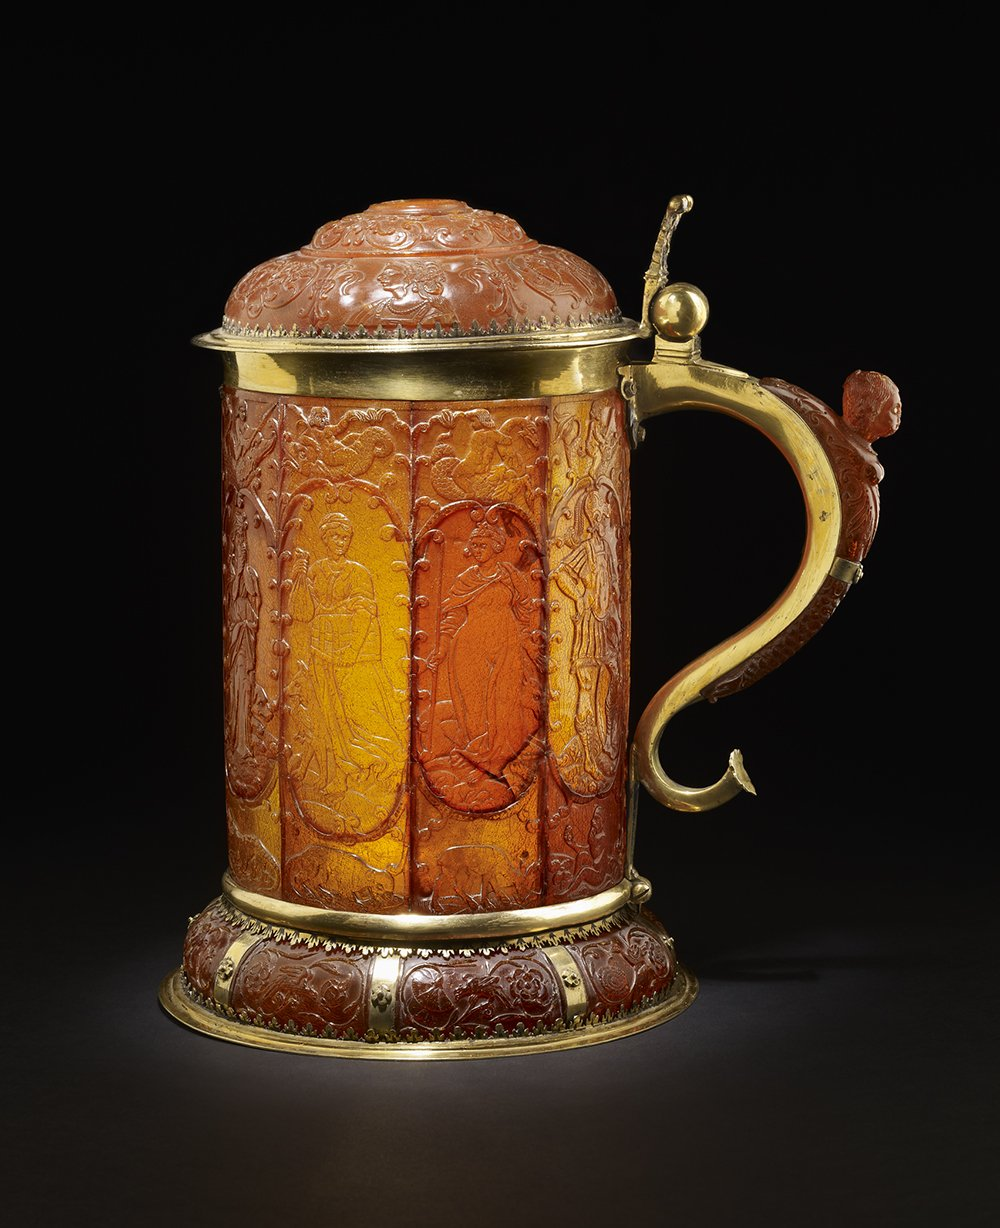 The first #Oktoberfest took place #onthisday in 1810. These magnificent tankards were all made in Germany. Prost! �� https://t.co/u0h5lDNlsI